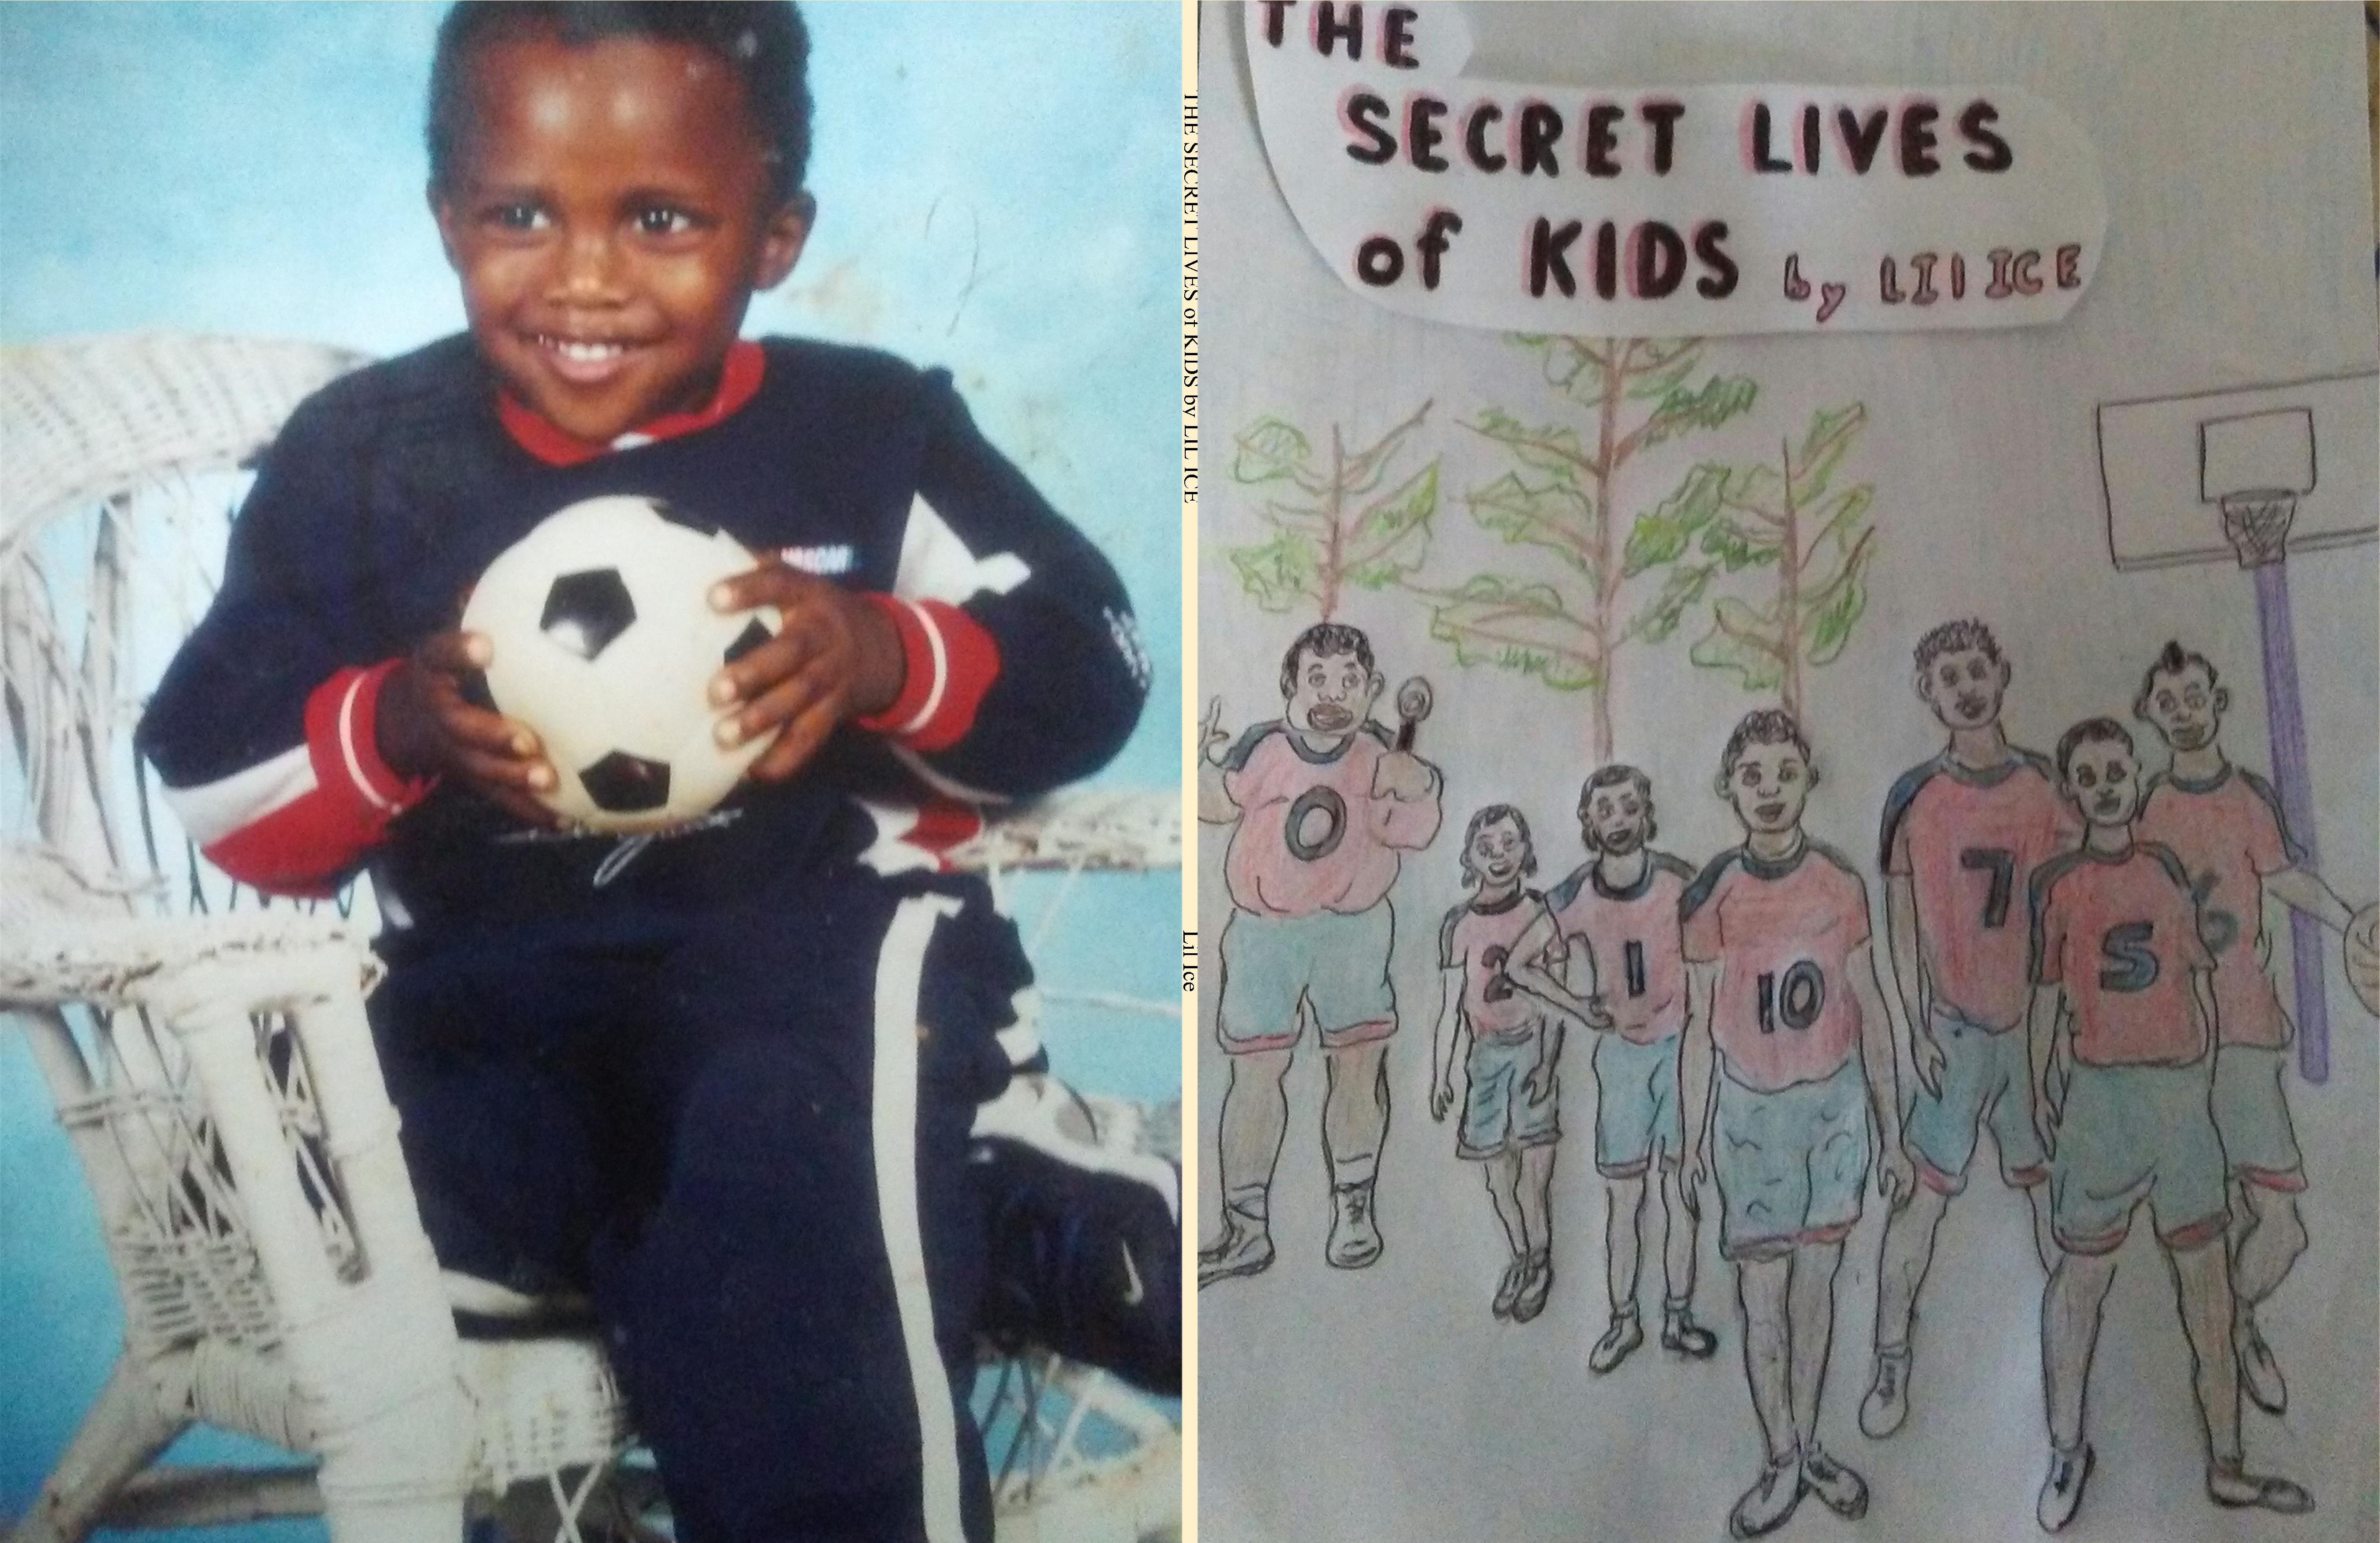 THE SECRET LIVES of KIDS by LIL ICE cover image